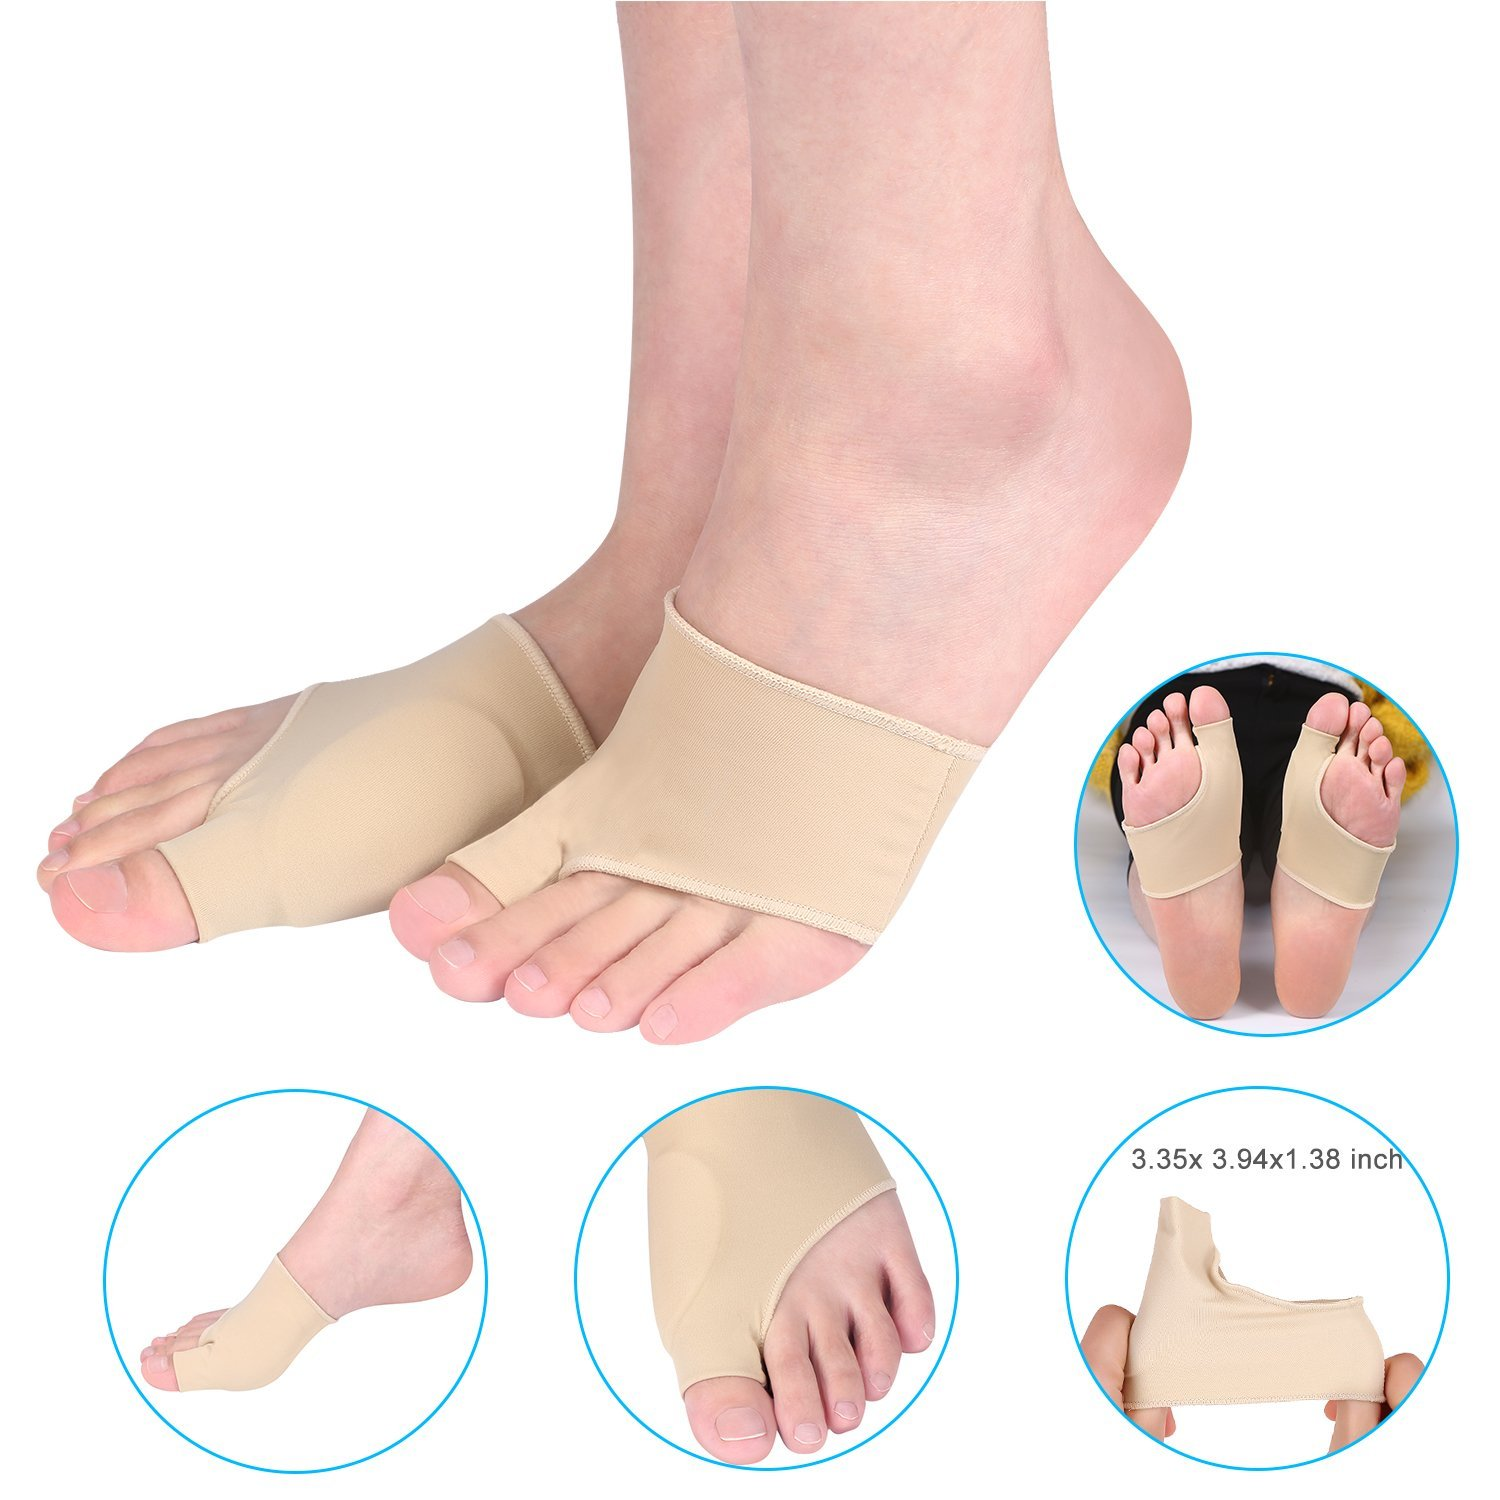 1 Pair Gel Pad Bunion Protector Sleeves Corrector Pad with Gel Toe Separators Spacers Straightener and Spreader 2 Booties For Hallux Valgus Bunion Pain Relief Proper Big Toe Alignment Wear with Shoes